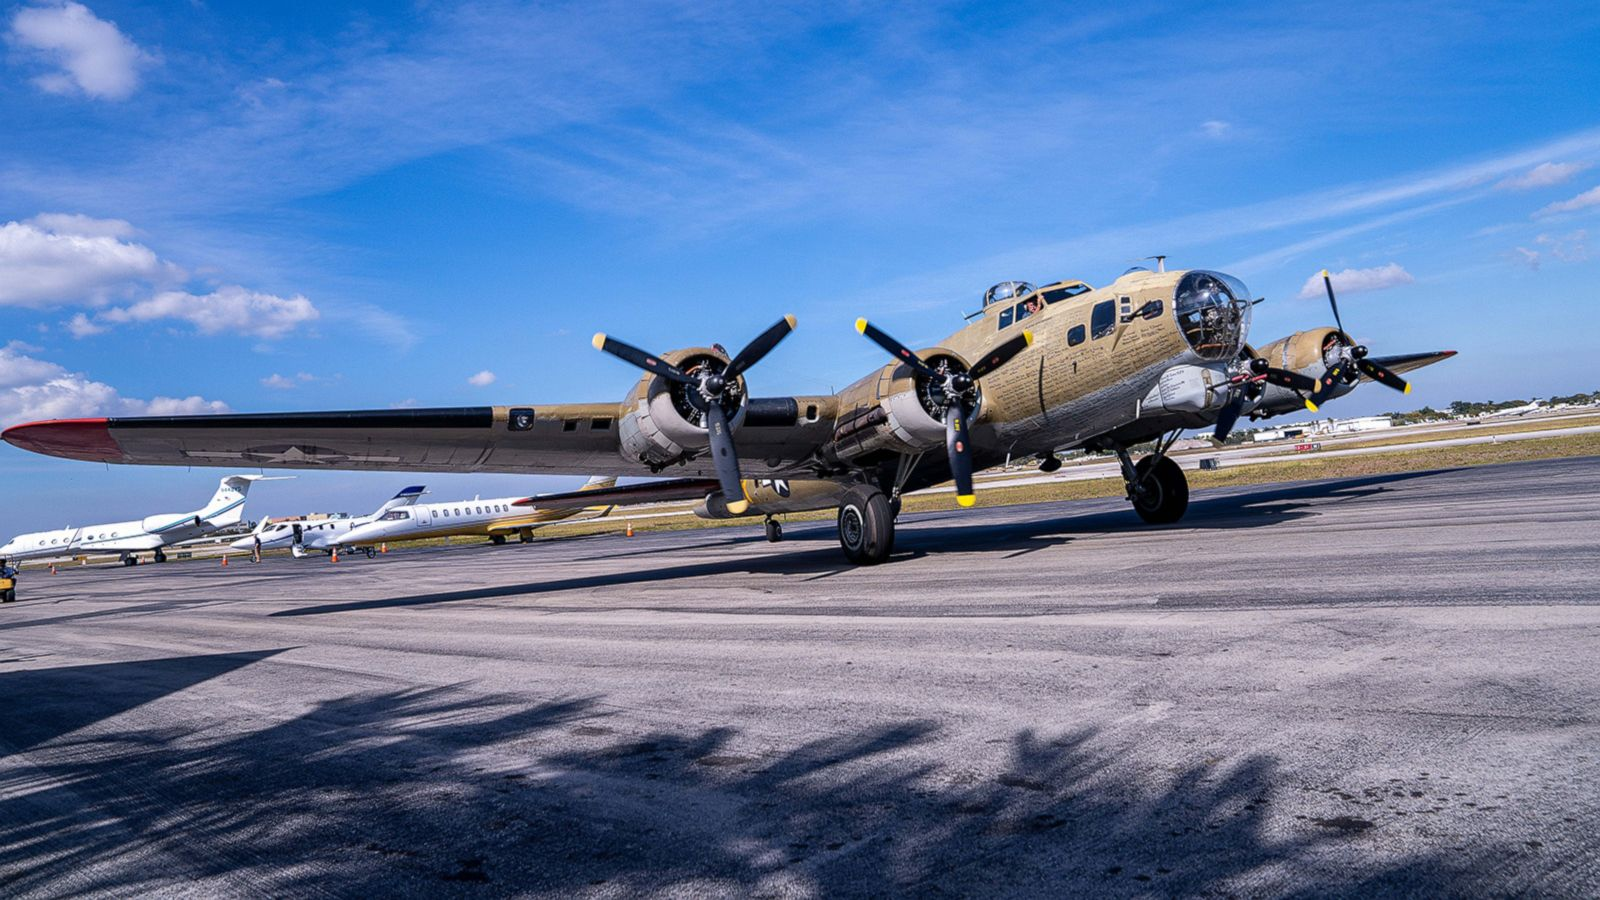 97 Year Old Wwii Veteran Takes Ride In B 17 Bomber To Celebrate